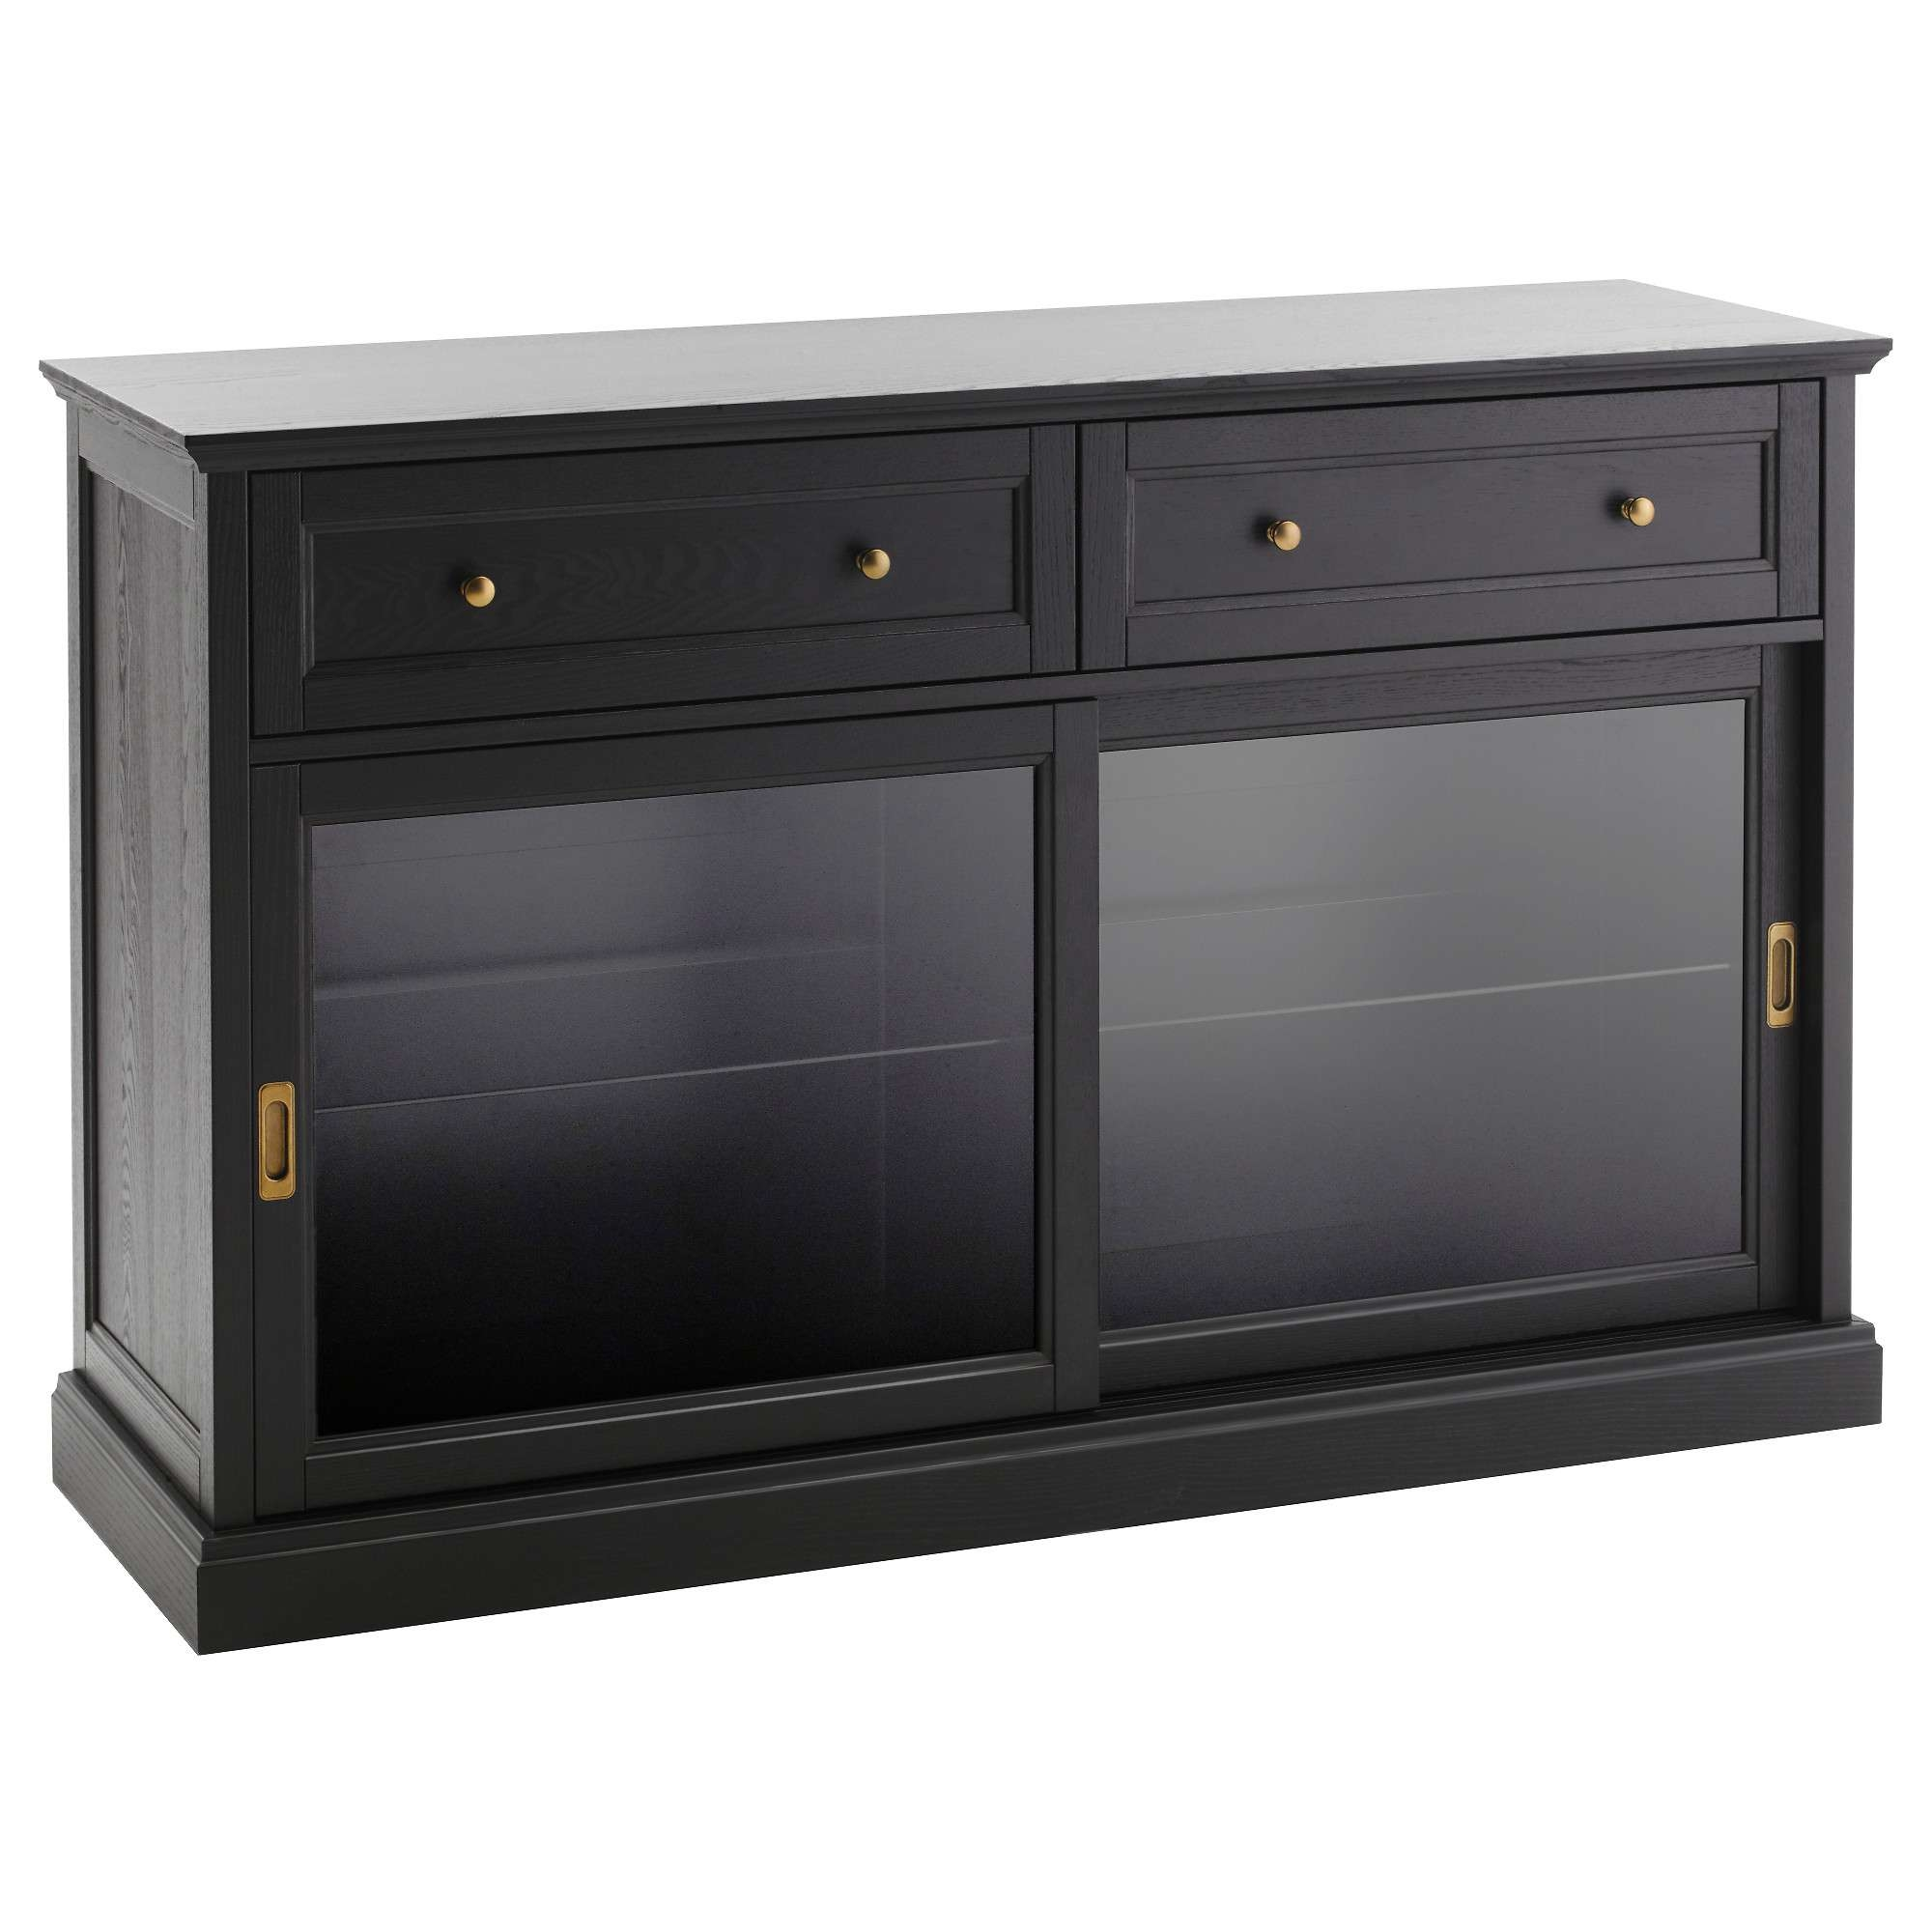 Buffet Tables & Sideboards – Ikea Within Bjursta Sideboards (View 5 of 20)